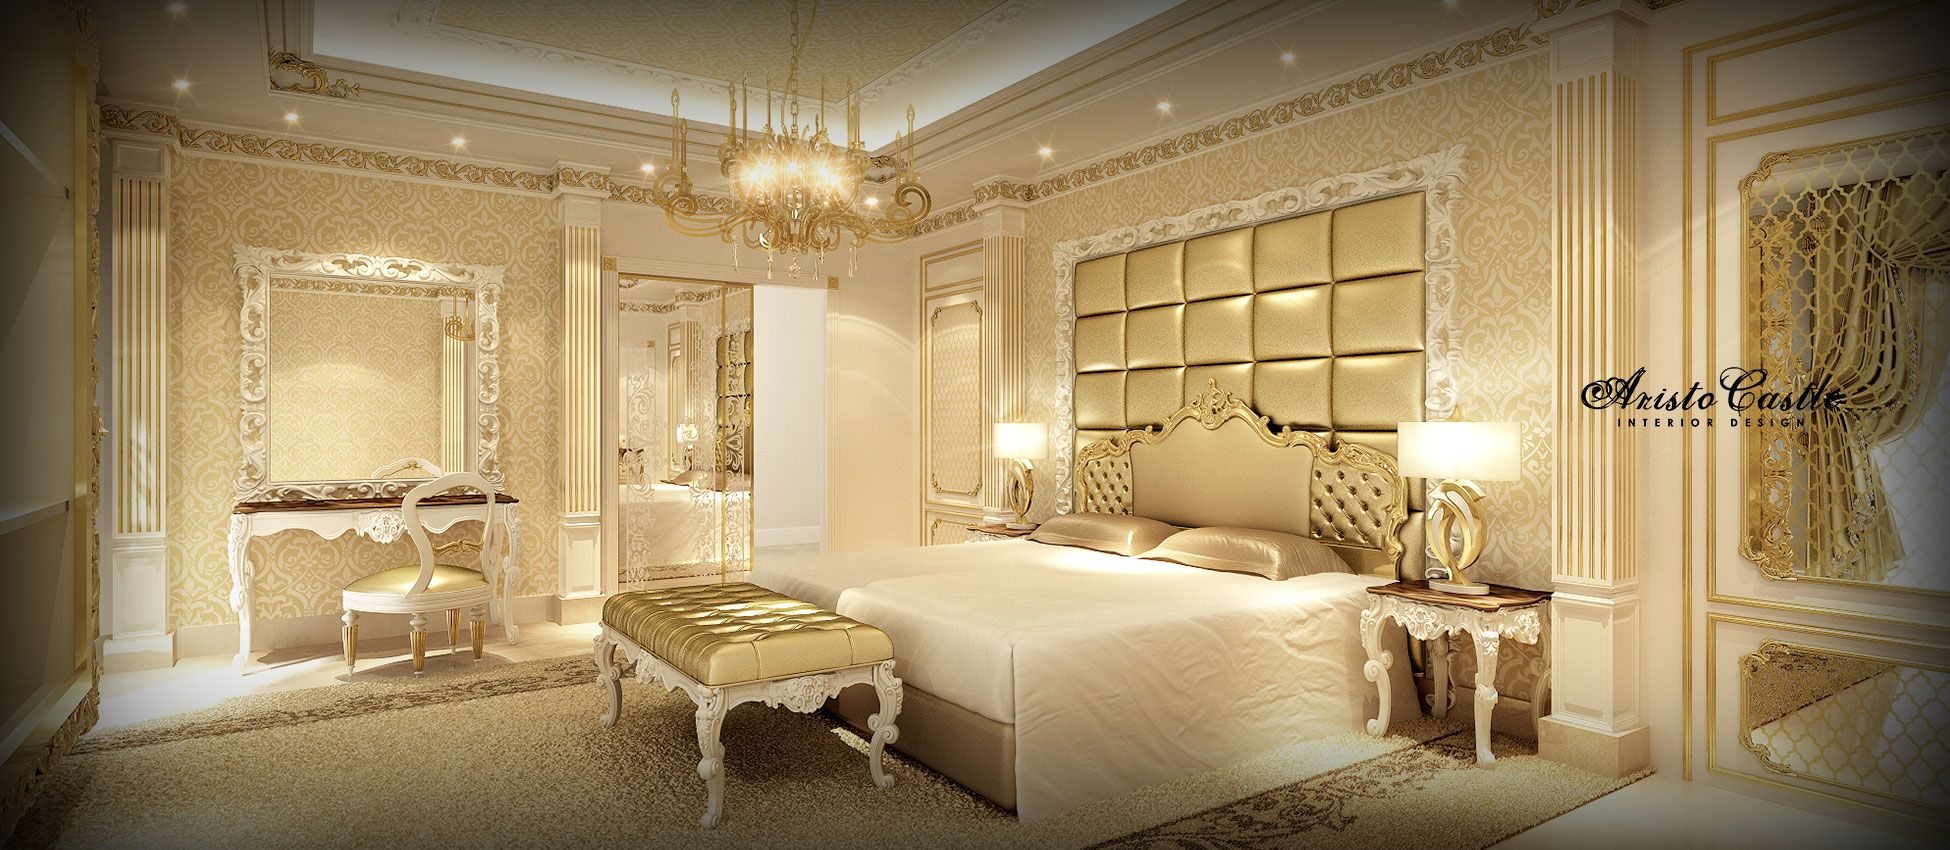 Dubai Luxury Interior Design Luxury Master Bedroom Design Ideas By Aristo Castle Interior